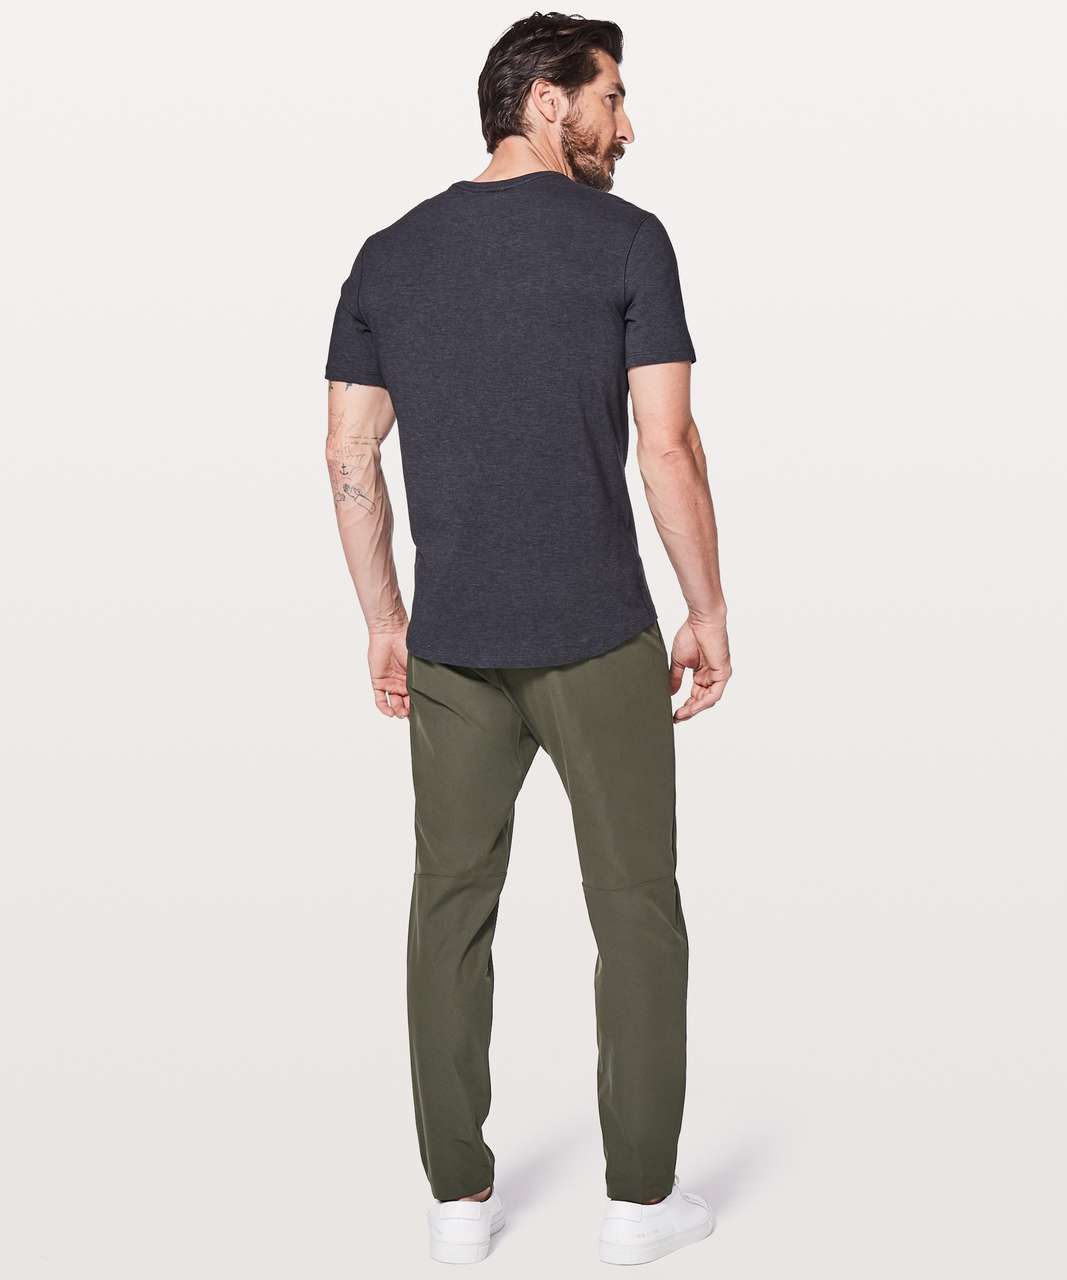 "Lululemon Commission Pant Slim *Warpstreme 32"" - Dark Olive"